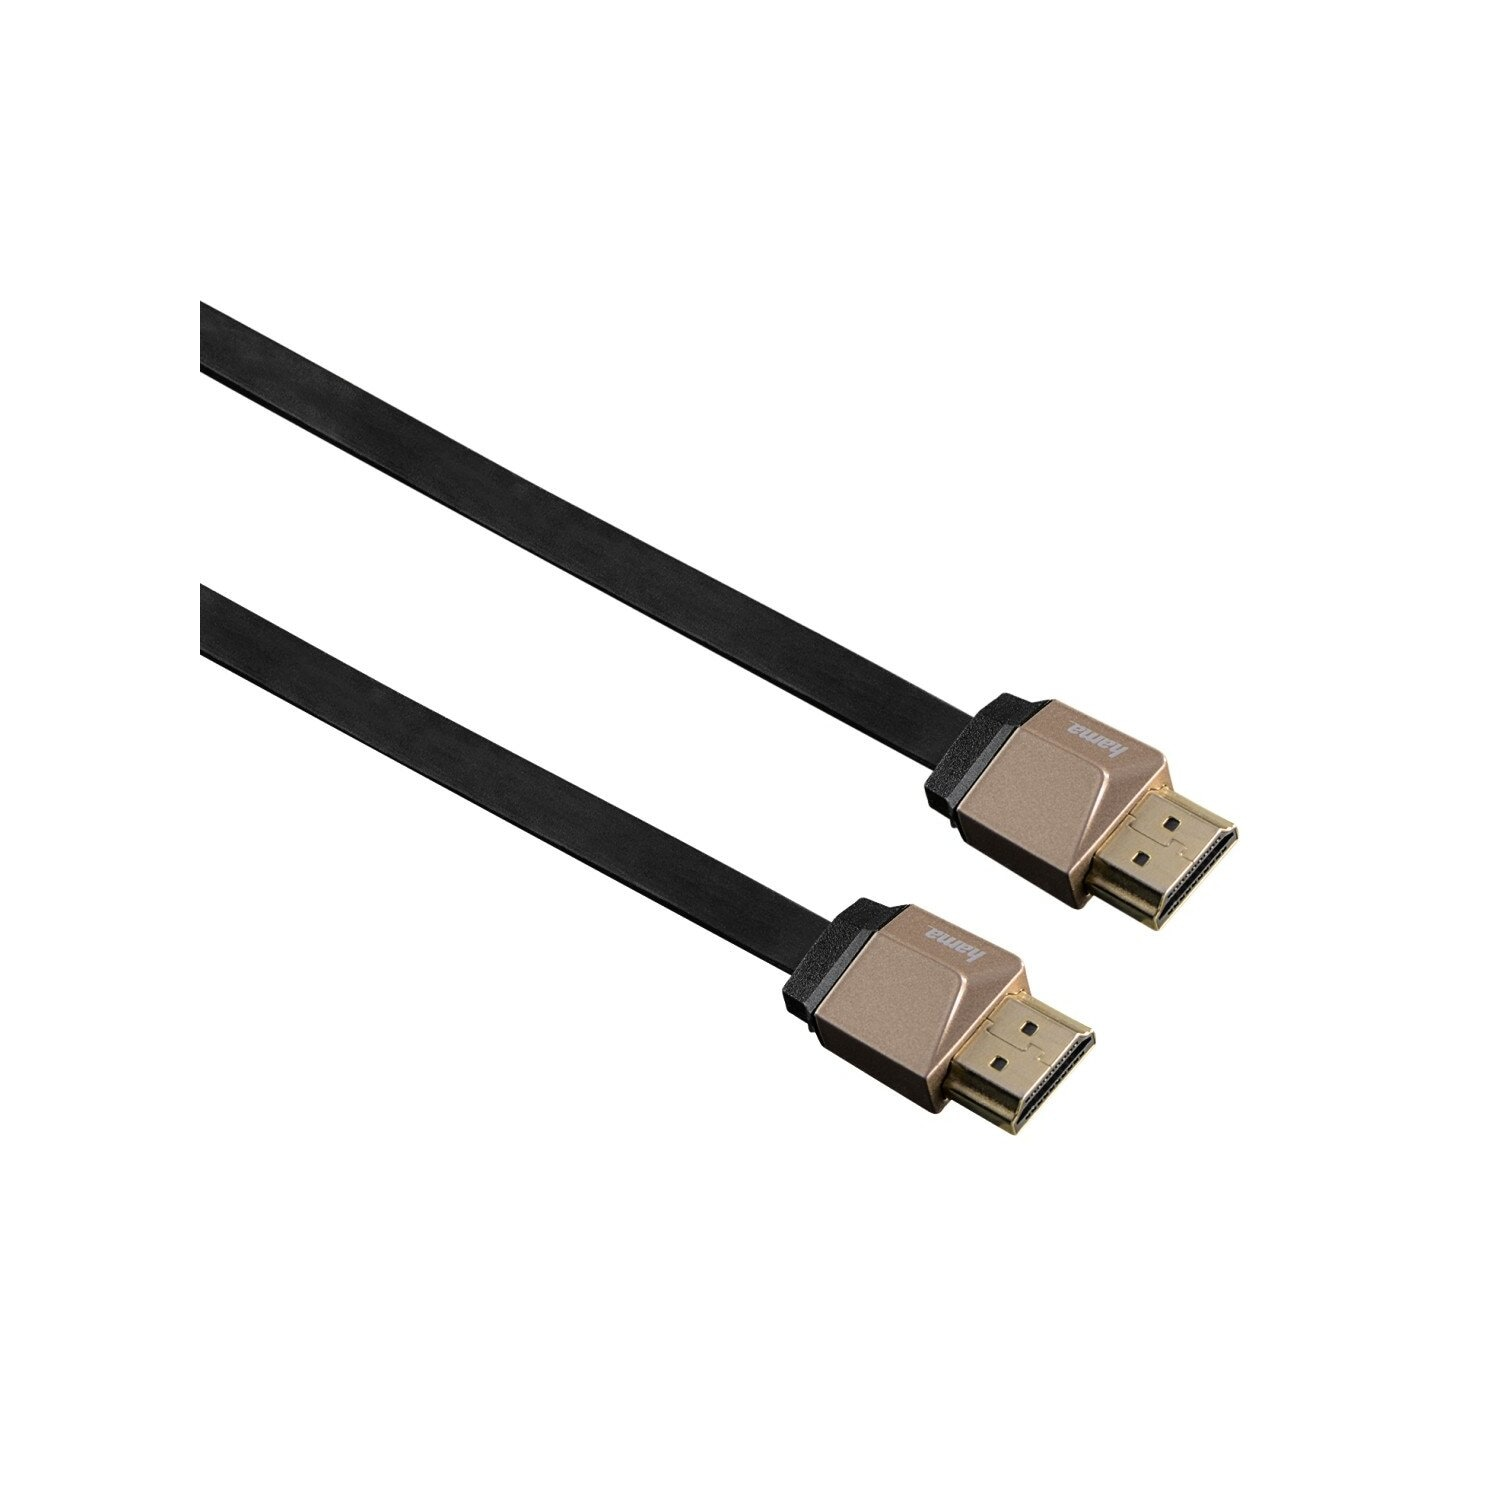 Kabel HAMA Proclass FLEXI-SLIM HDMI - HDMI 1.5 m